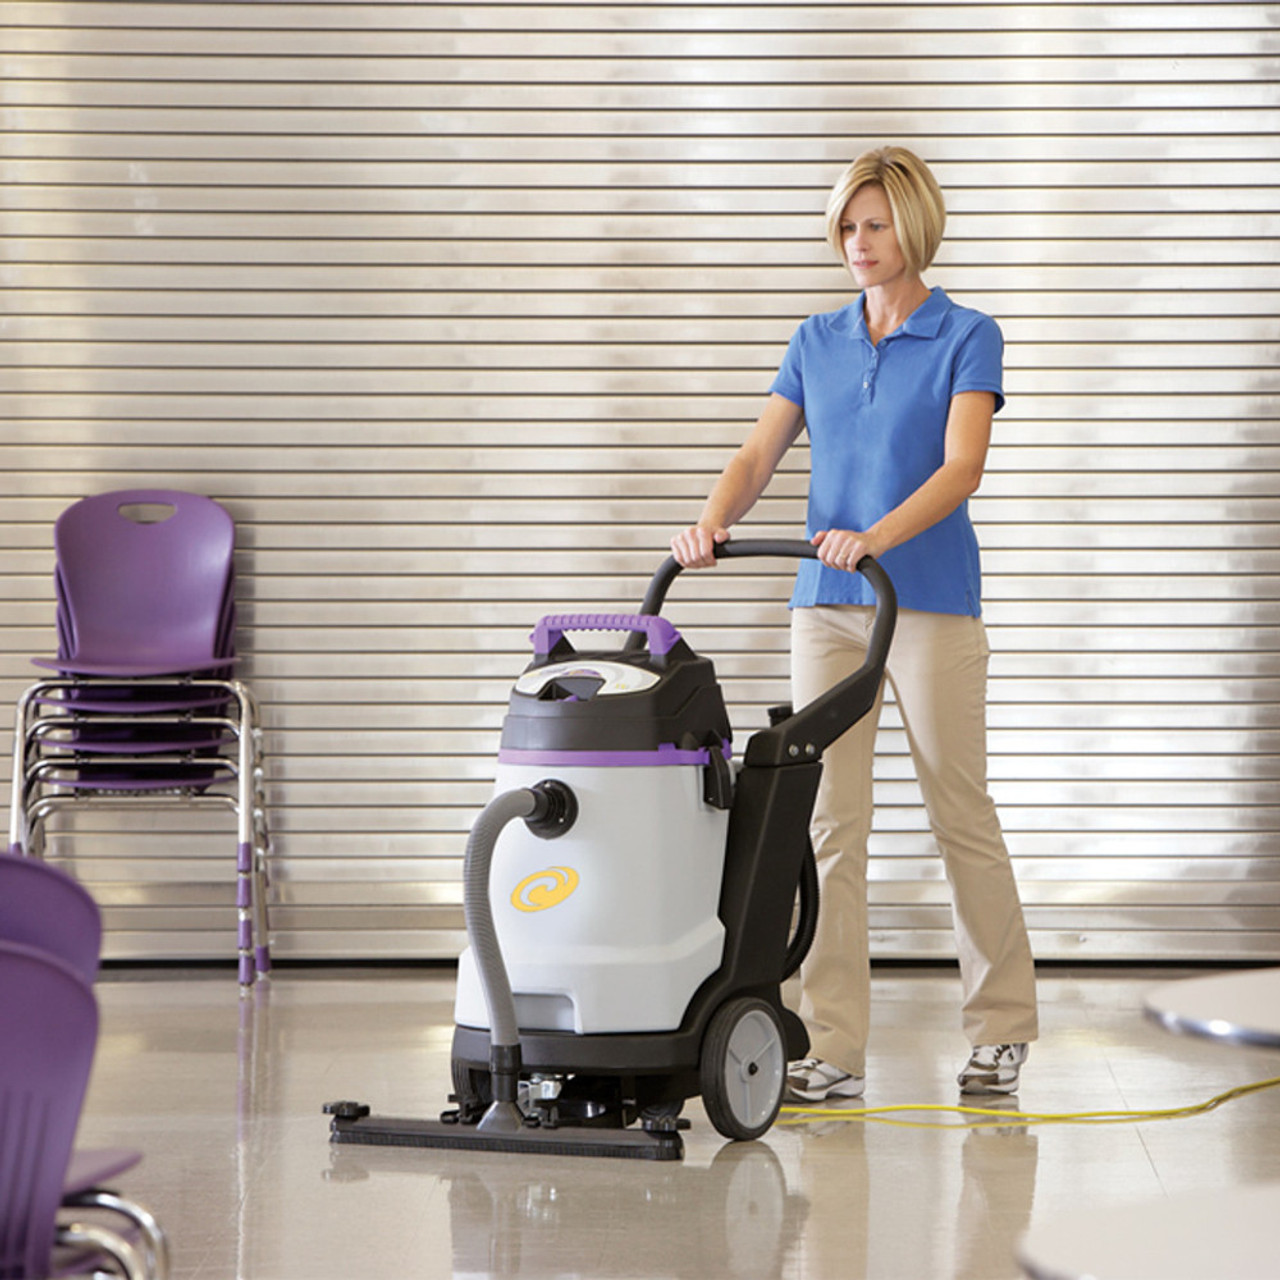 Use the ProGuard 15 wet/dry vacuum to tackle large spills and messy floors, often a problem in cafeterias.